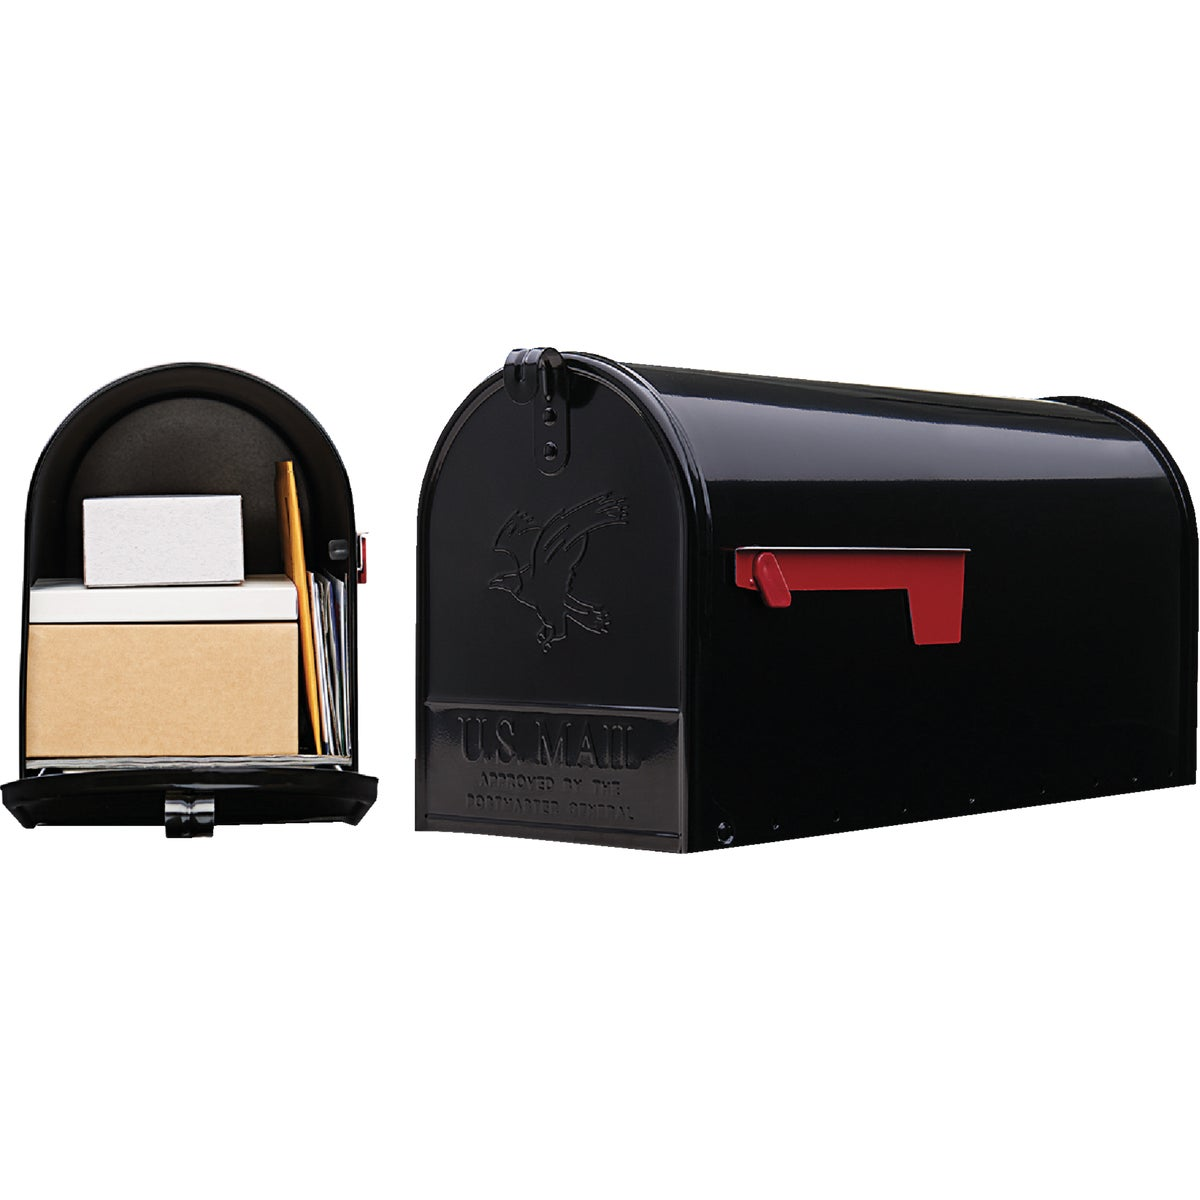 BLACK T2 MAILBOX - E16B#T2 by Solar Group